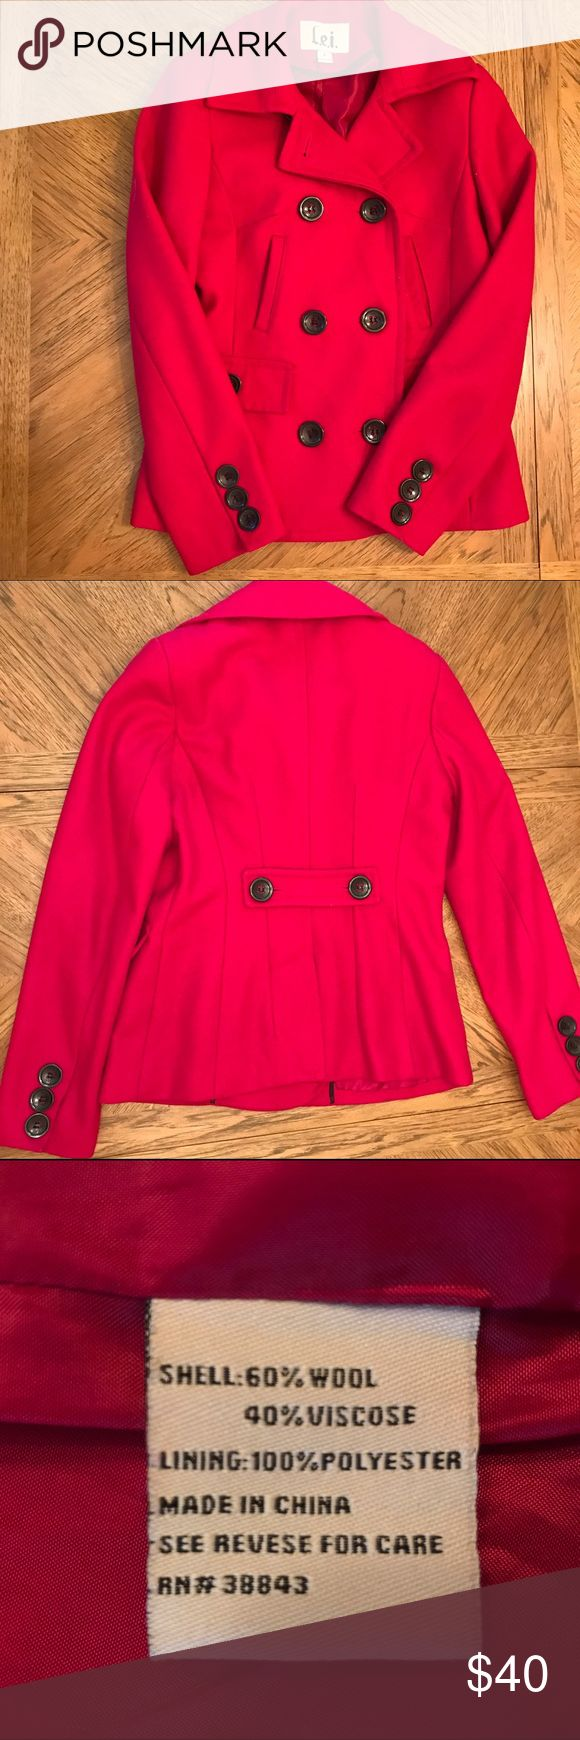 🍎Wool-Blend Apple Red Pea Coat 🍎 Fall is upon us! Time for some apple cider, scarves, and pea coats. This bright red pea coat will make any wardrobe pop. It is in excellent condition with no tears, rips, or pilling. Just needs a lint roller. Has four pockets and lovely, bold, black buttons. Comes with a good that is detachable (not pictured)! Purchased at Macy's (brand is l.e.i.) Make me an offer and happy Fall! 🍁🍂🎃 Macy's Jackets & Coats Pea Coats